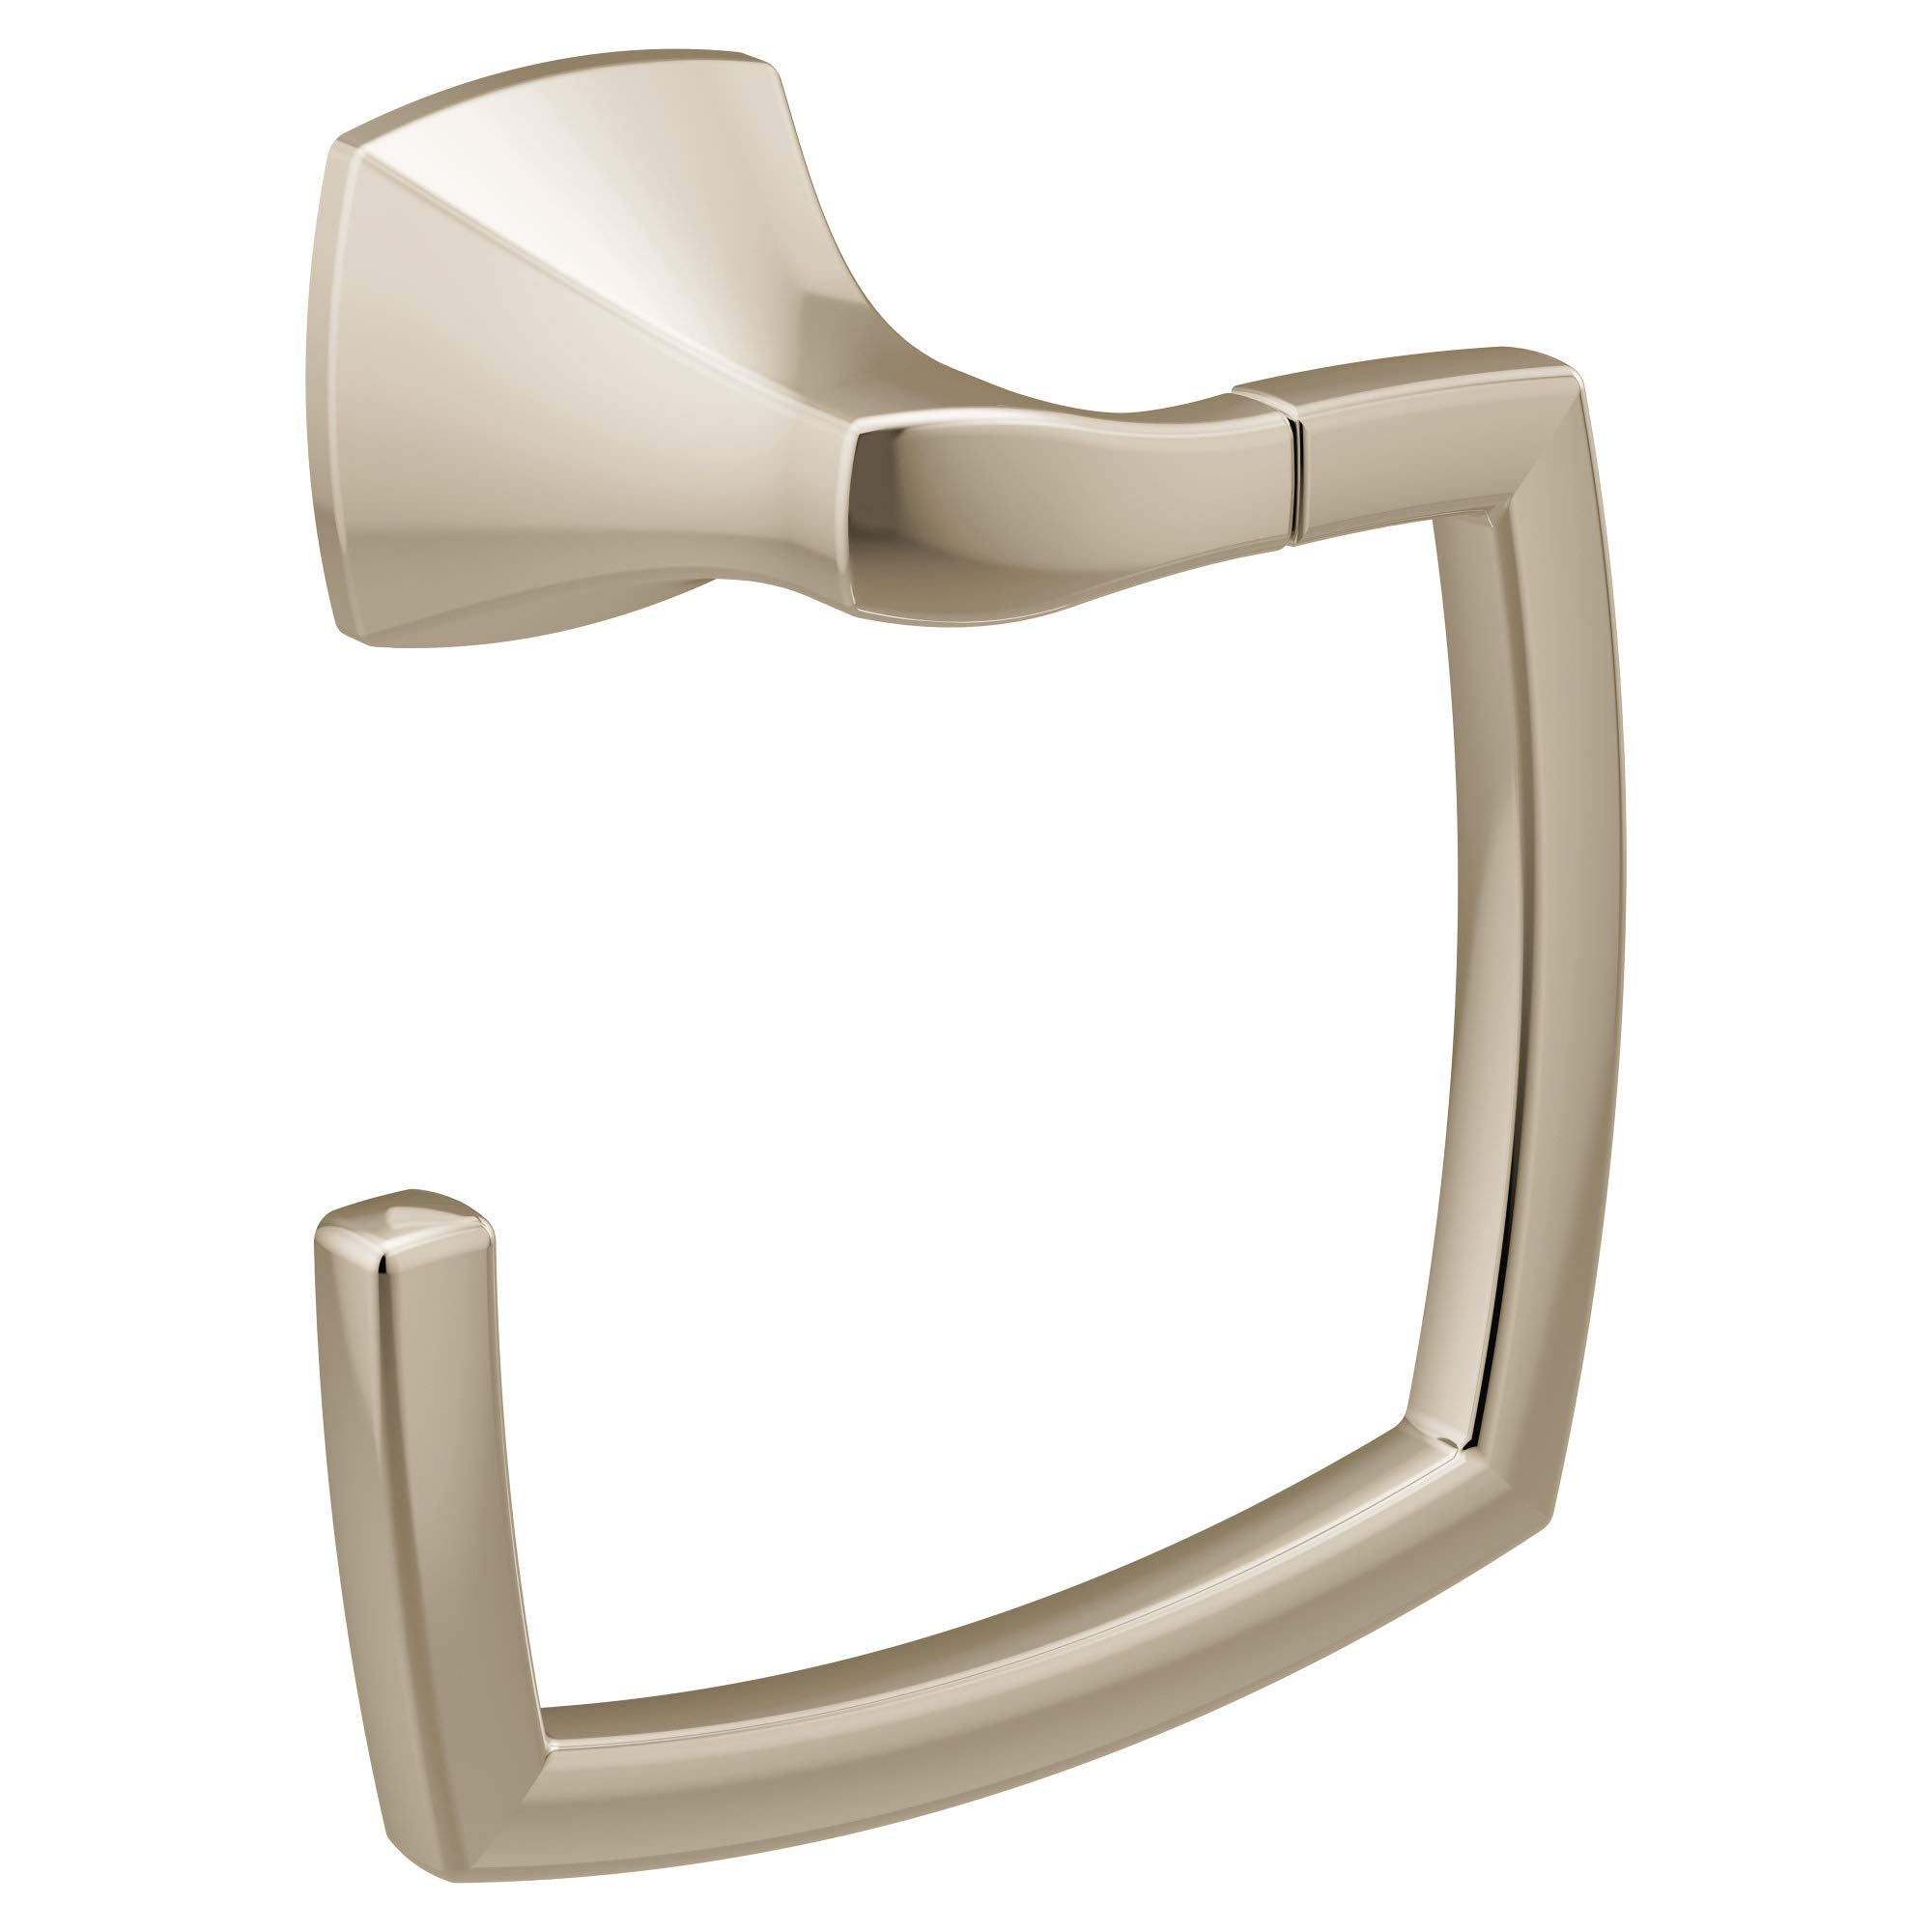 Moen YB5186NL Voss Collection Bathroom Hand Towel Ring, Polished Nickel